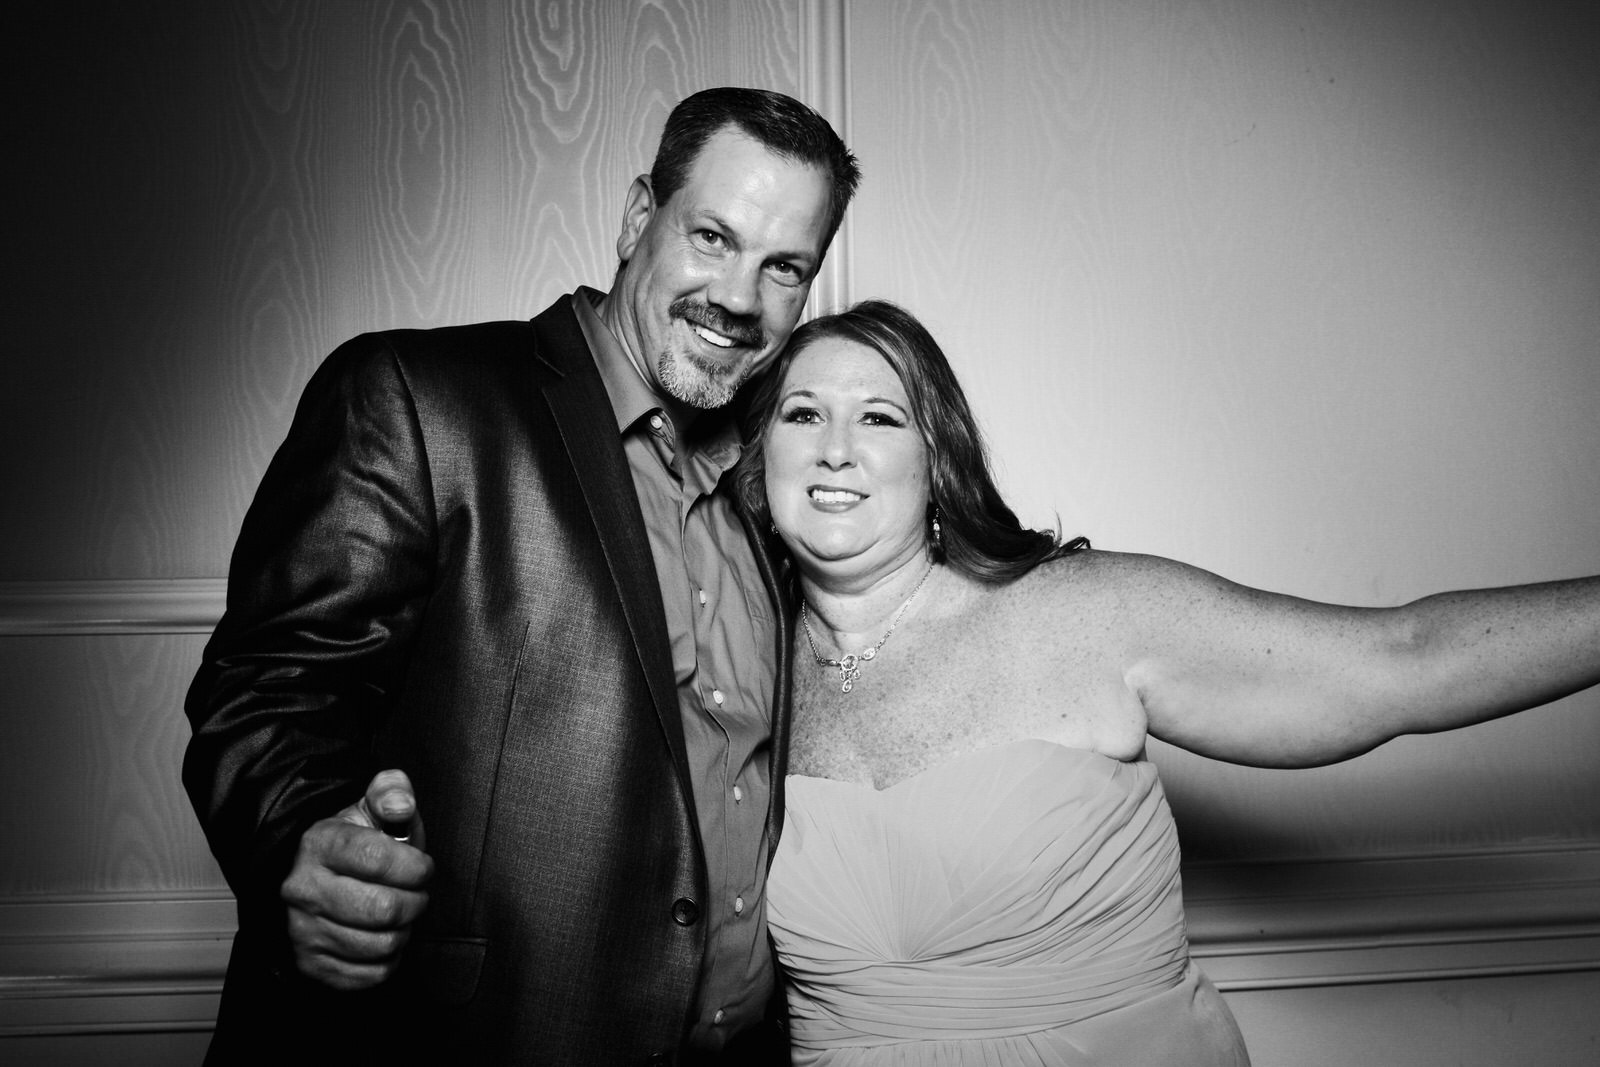 Ashley-Tyrone-Wedding-Photo-Booth-Presidential_Norristown-Wedding-9.jpg